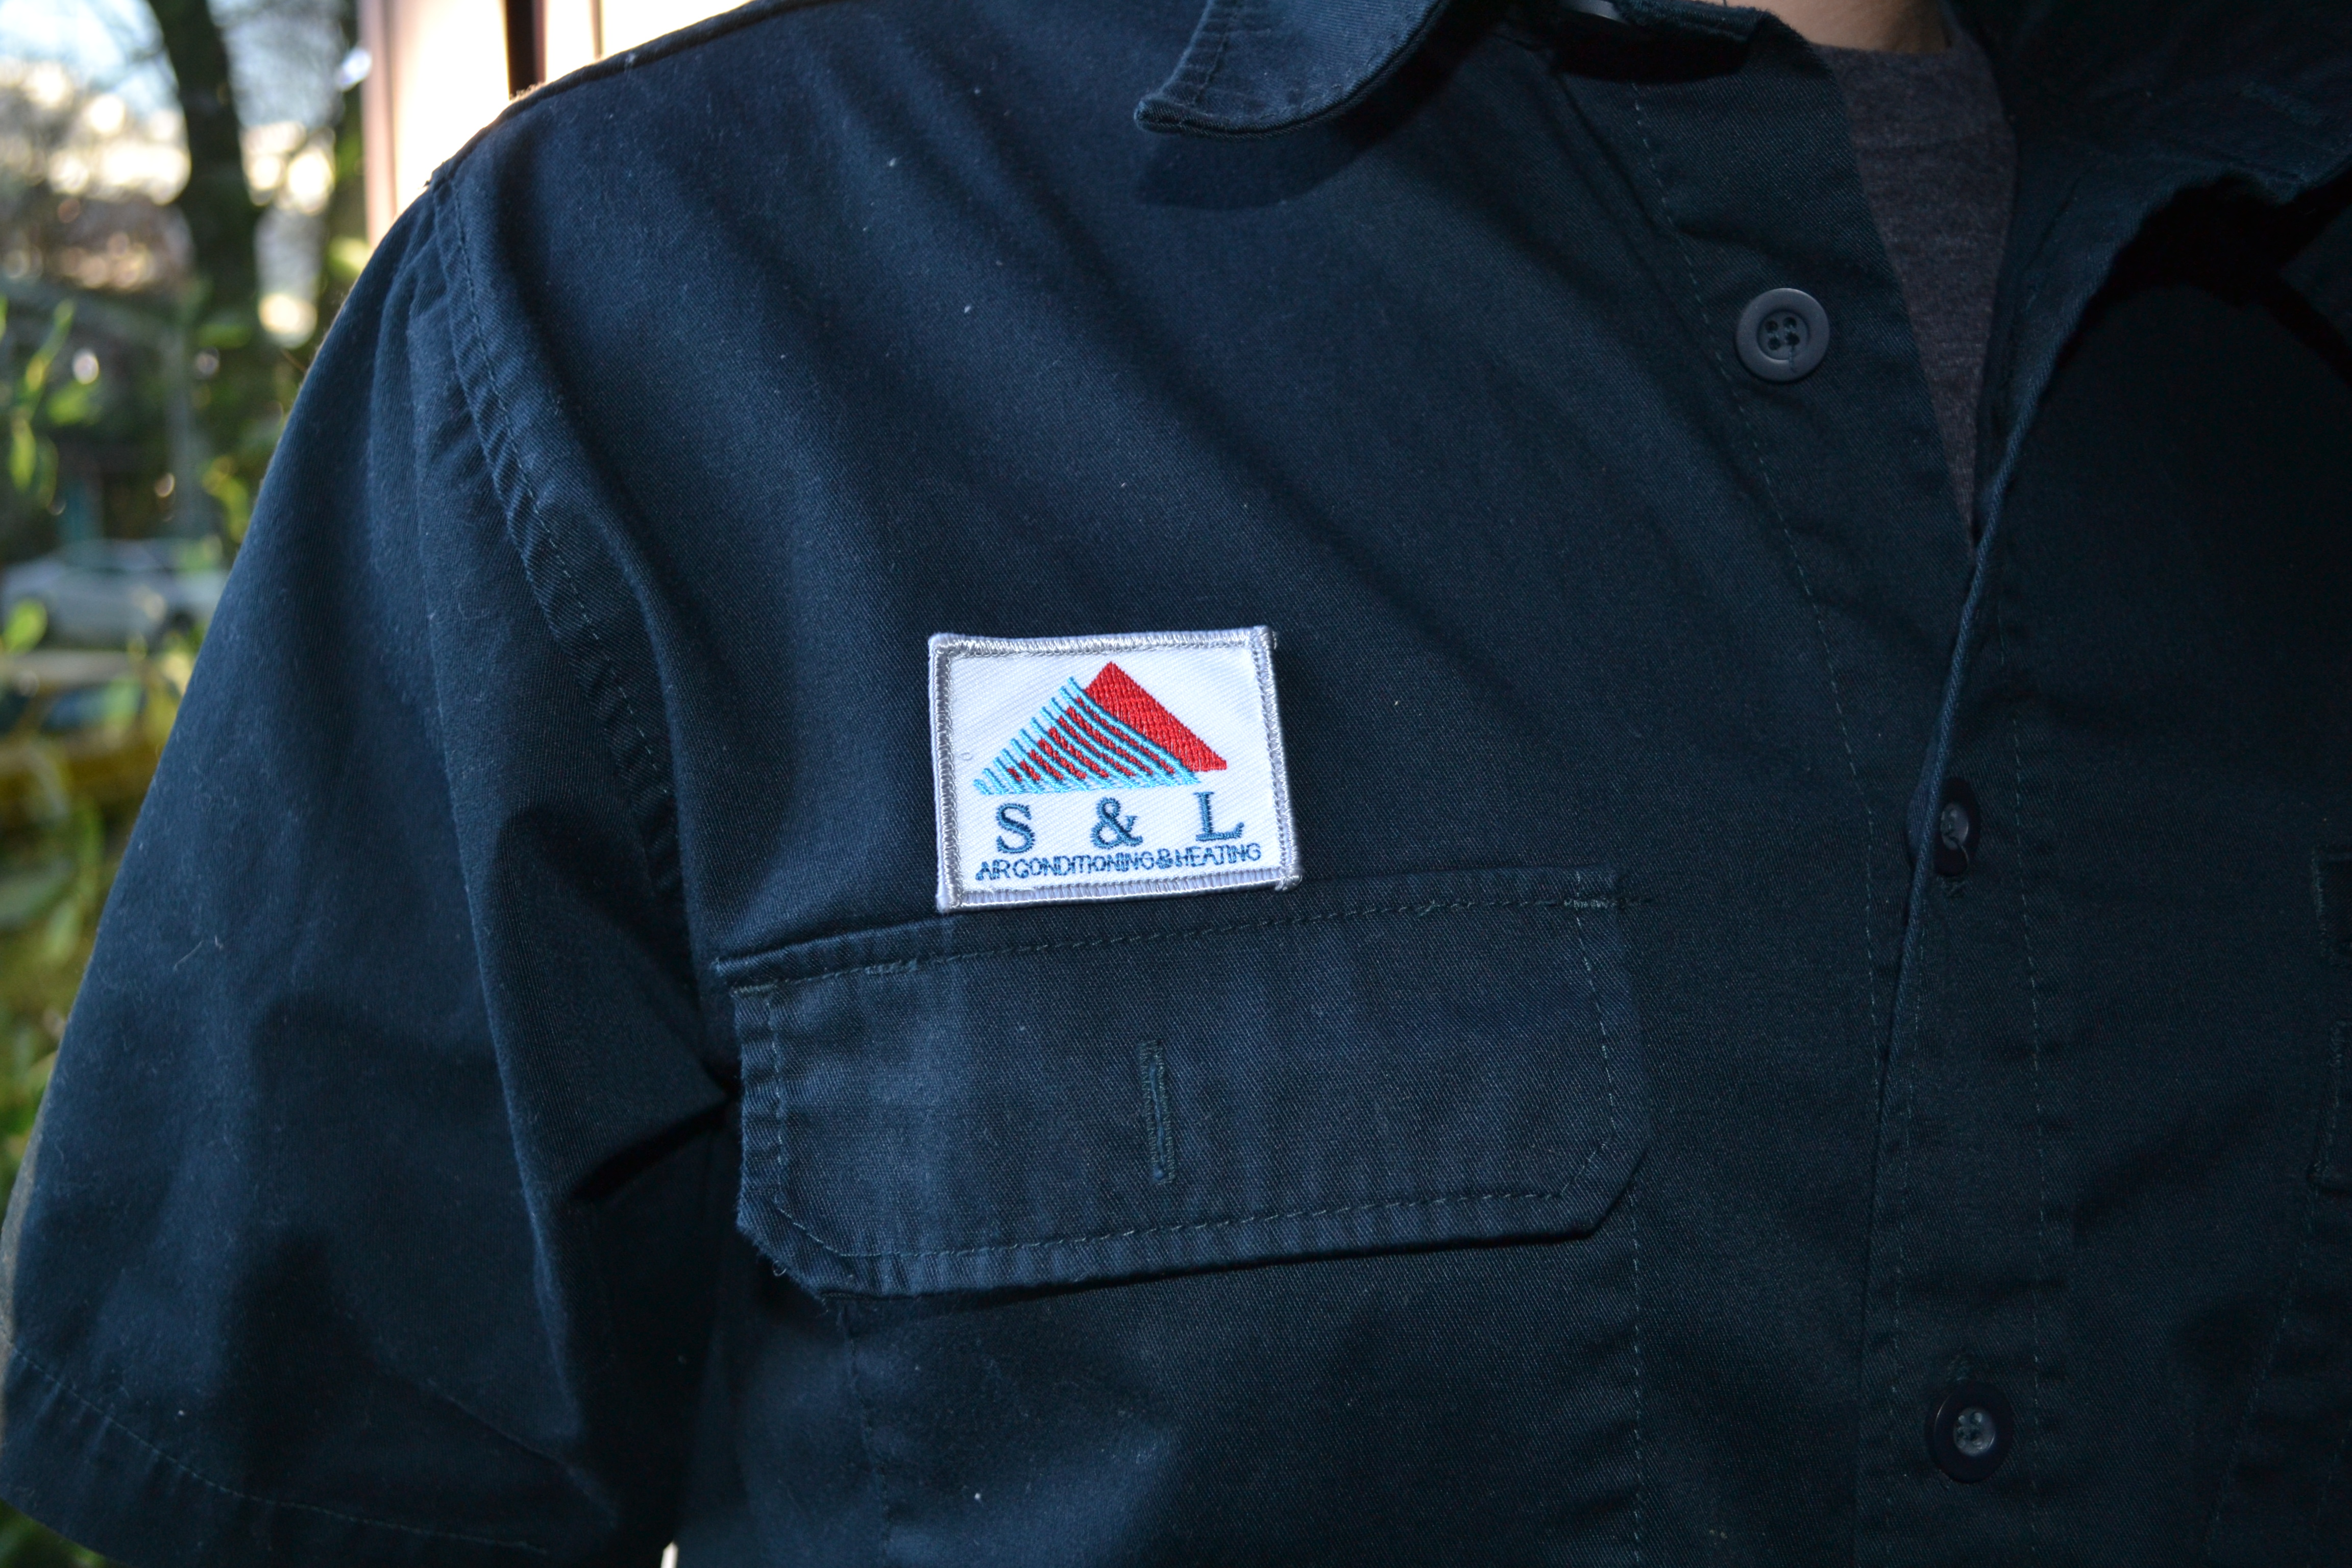 s&l-air-conditioning-and-heating-logo-shirt